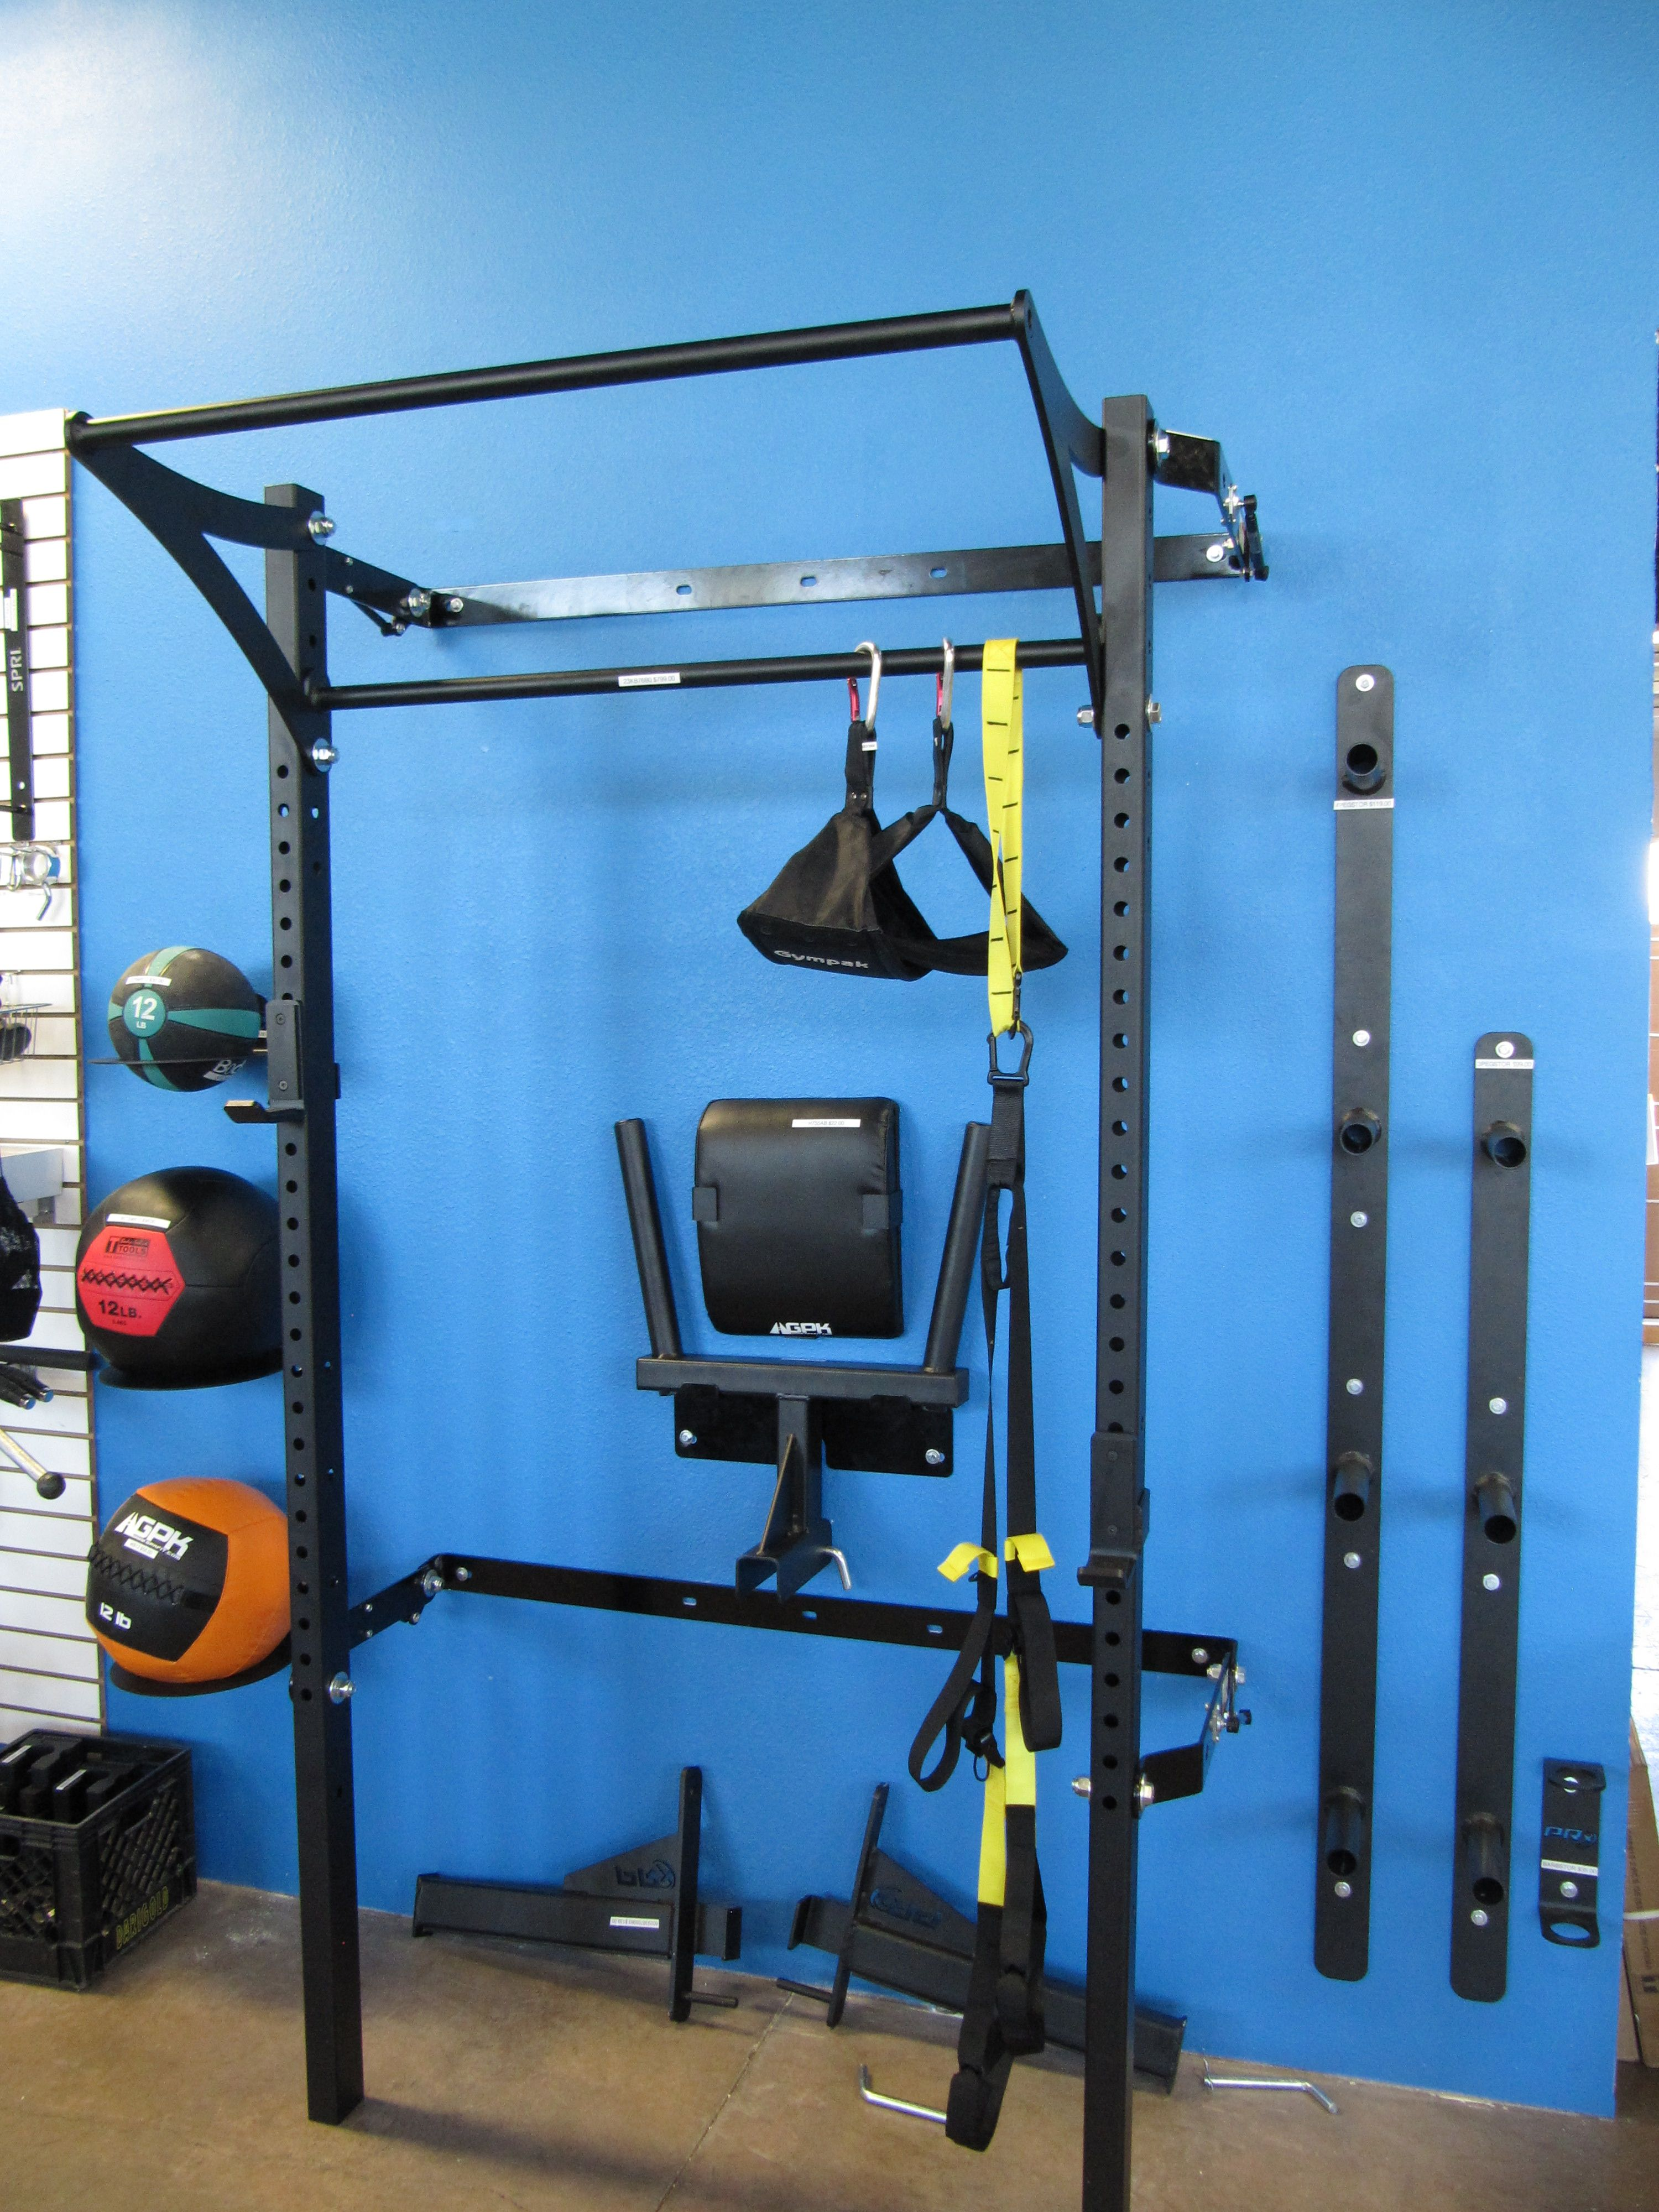 Prx garage gym profile rack with kipping bar™ as seen on abc s